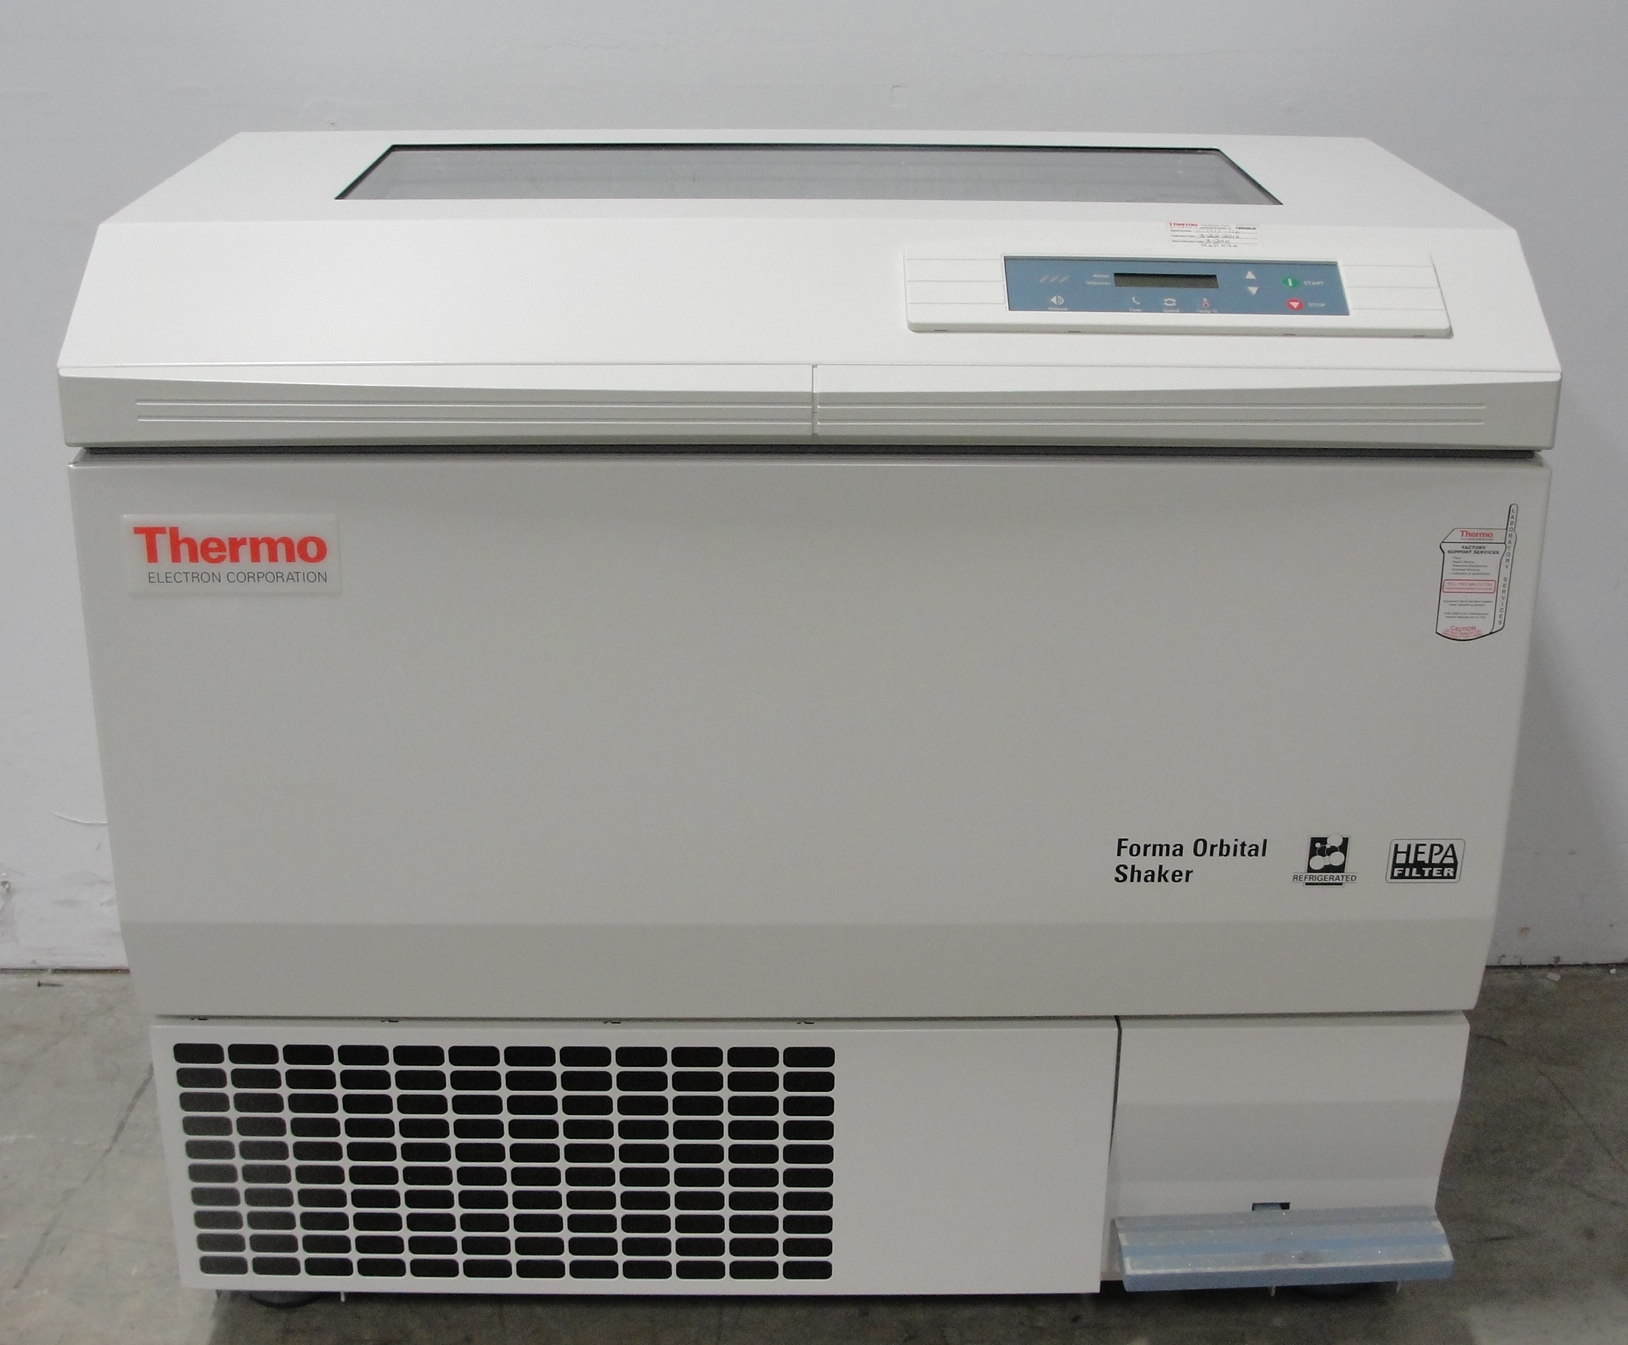 Thermo Electron Corporation Refrigerated Orbital Shaker, Model 480 Image